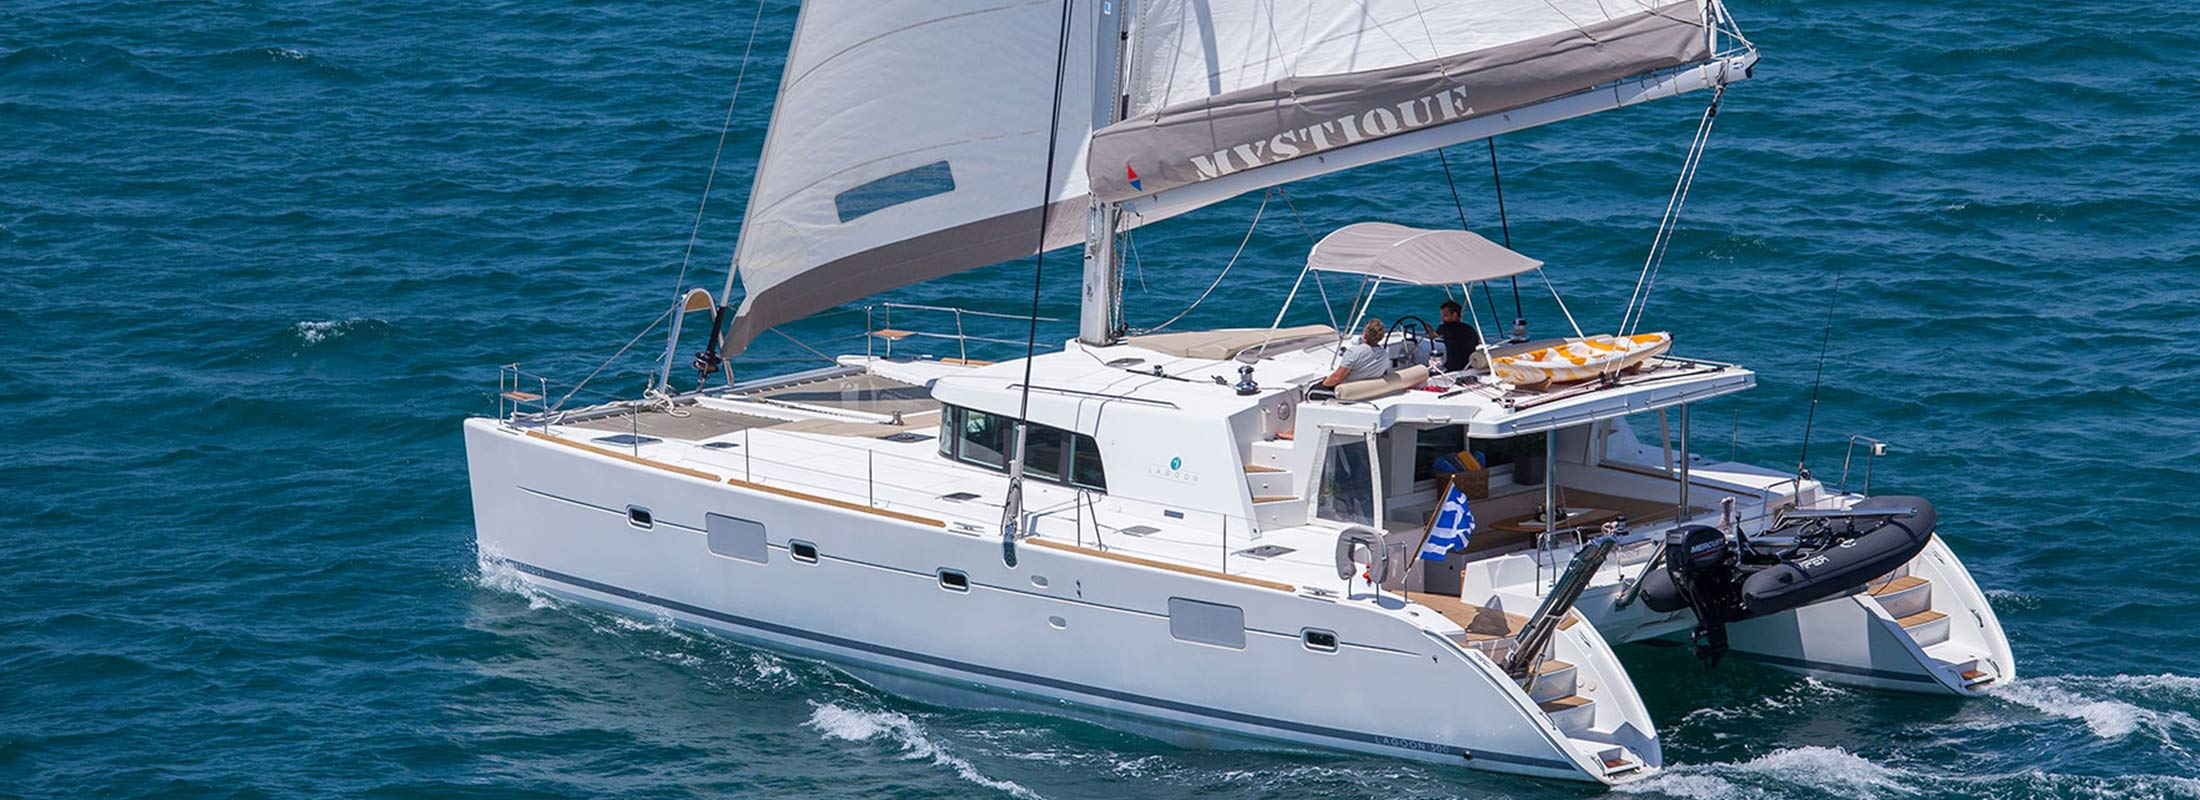 Mystique Sailing Yacht for Charter Mediterranean slider 1